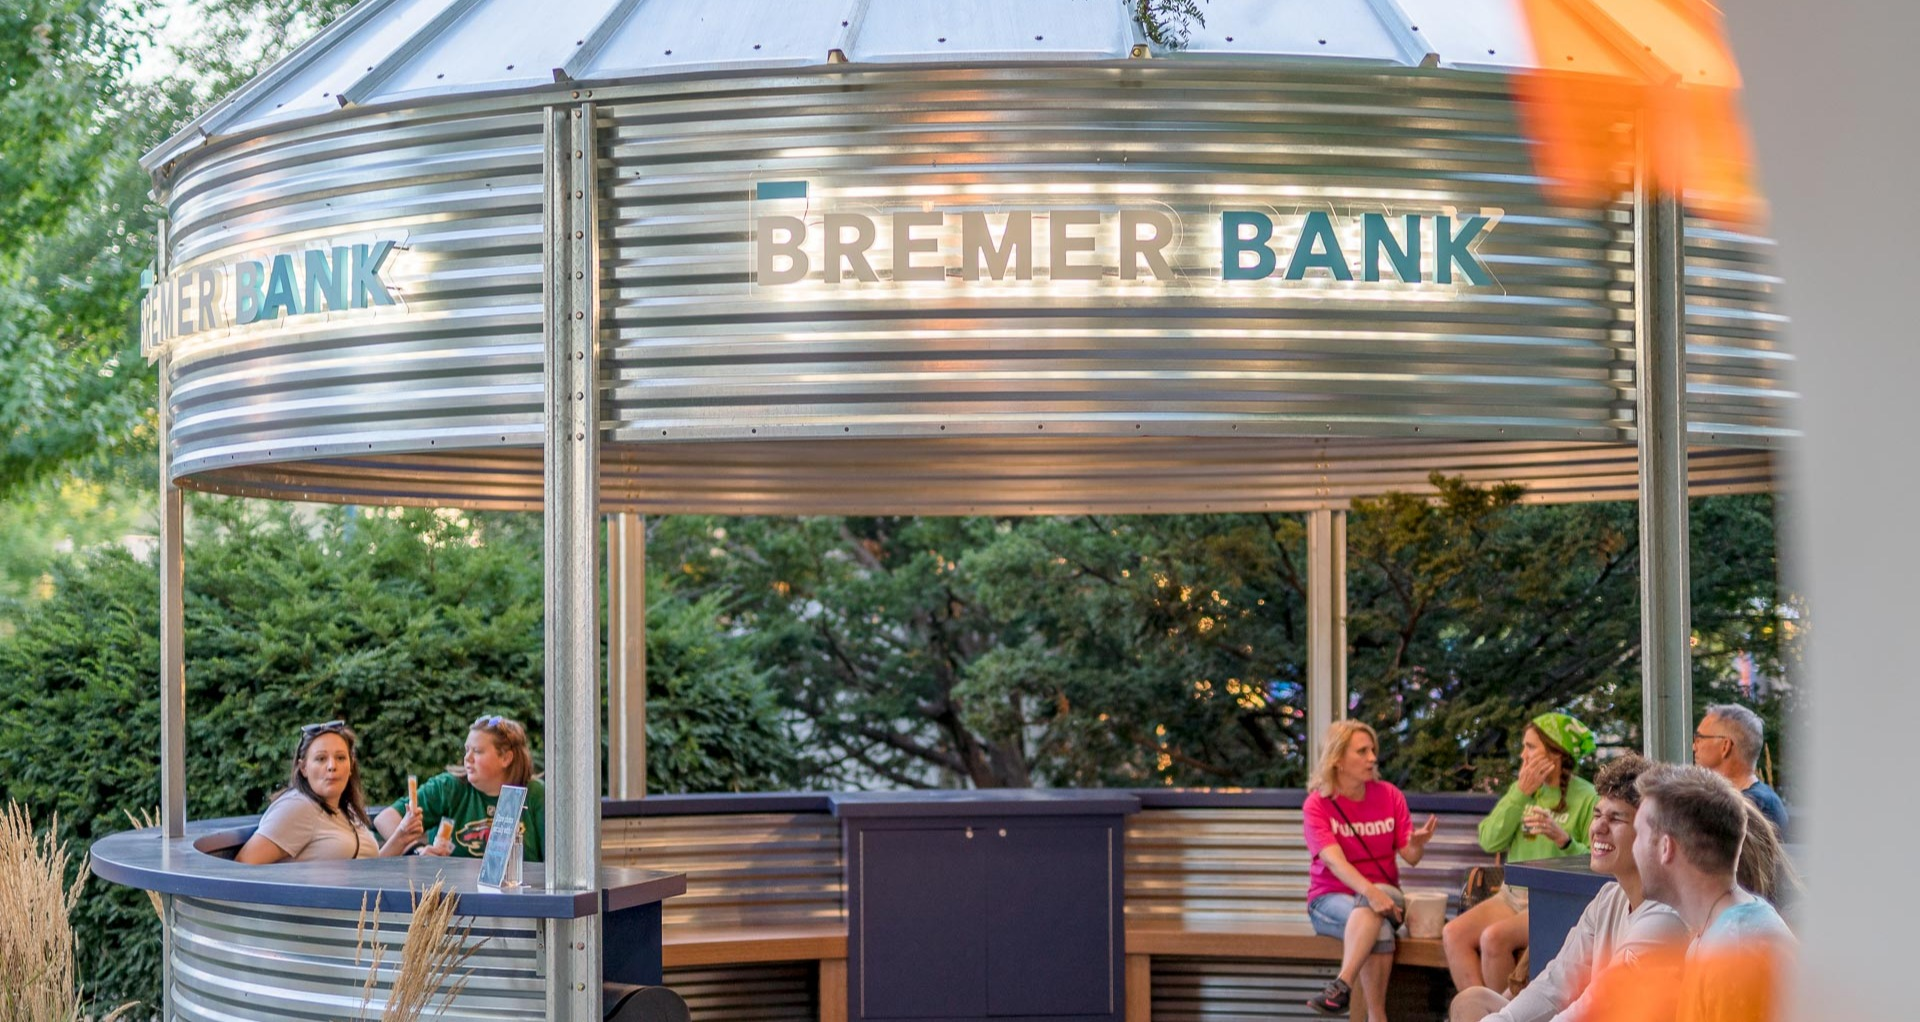 Bremer Bank at the Minnesota State Fair